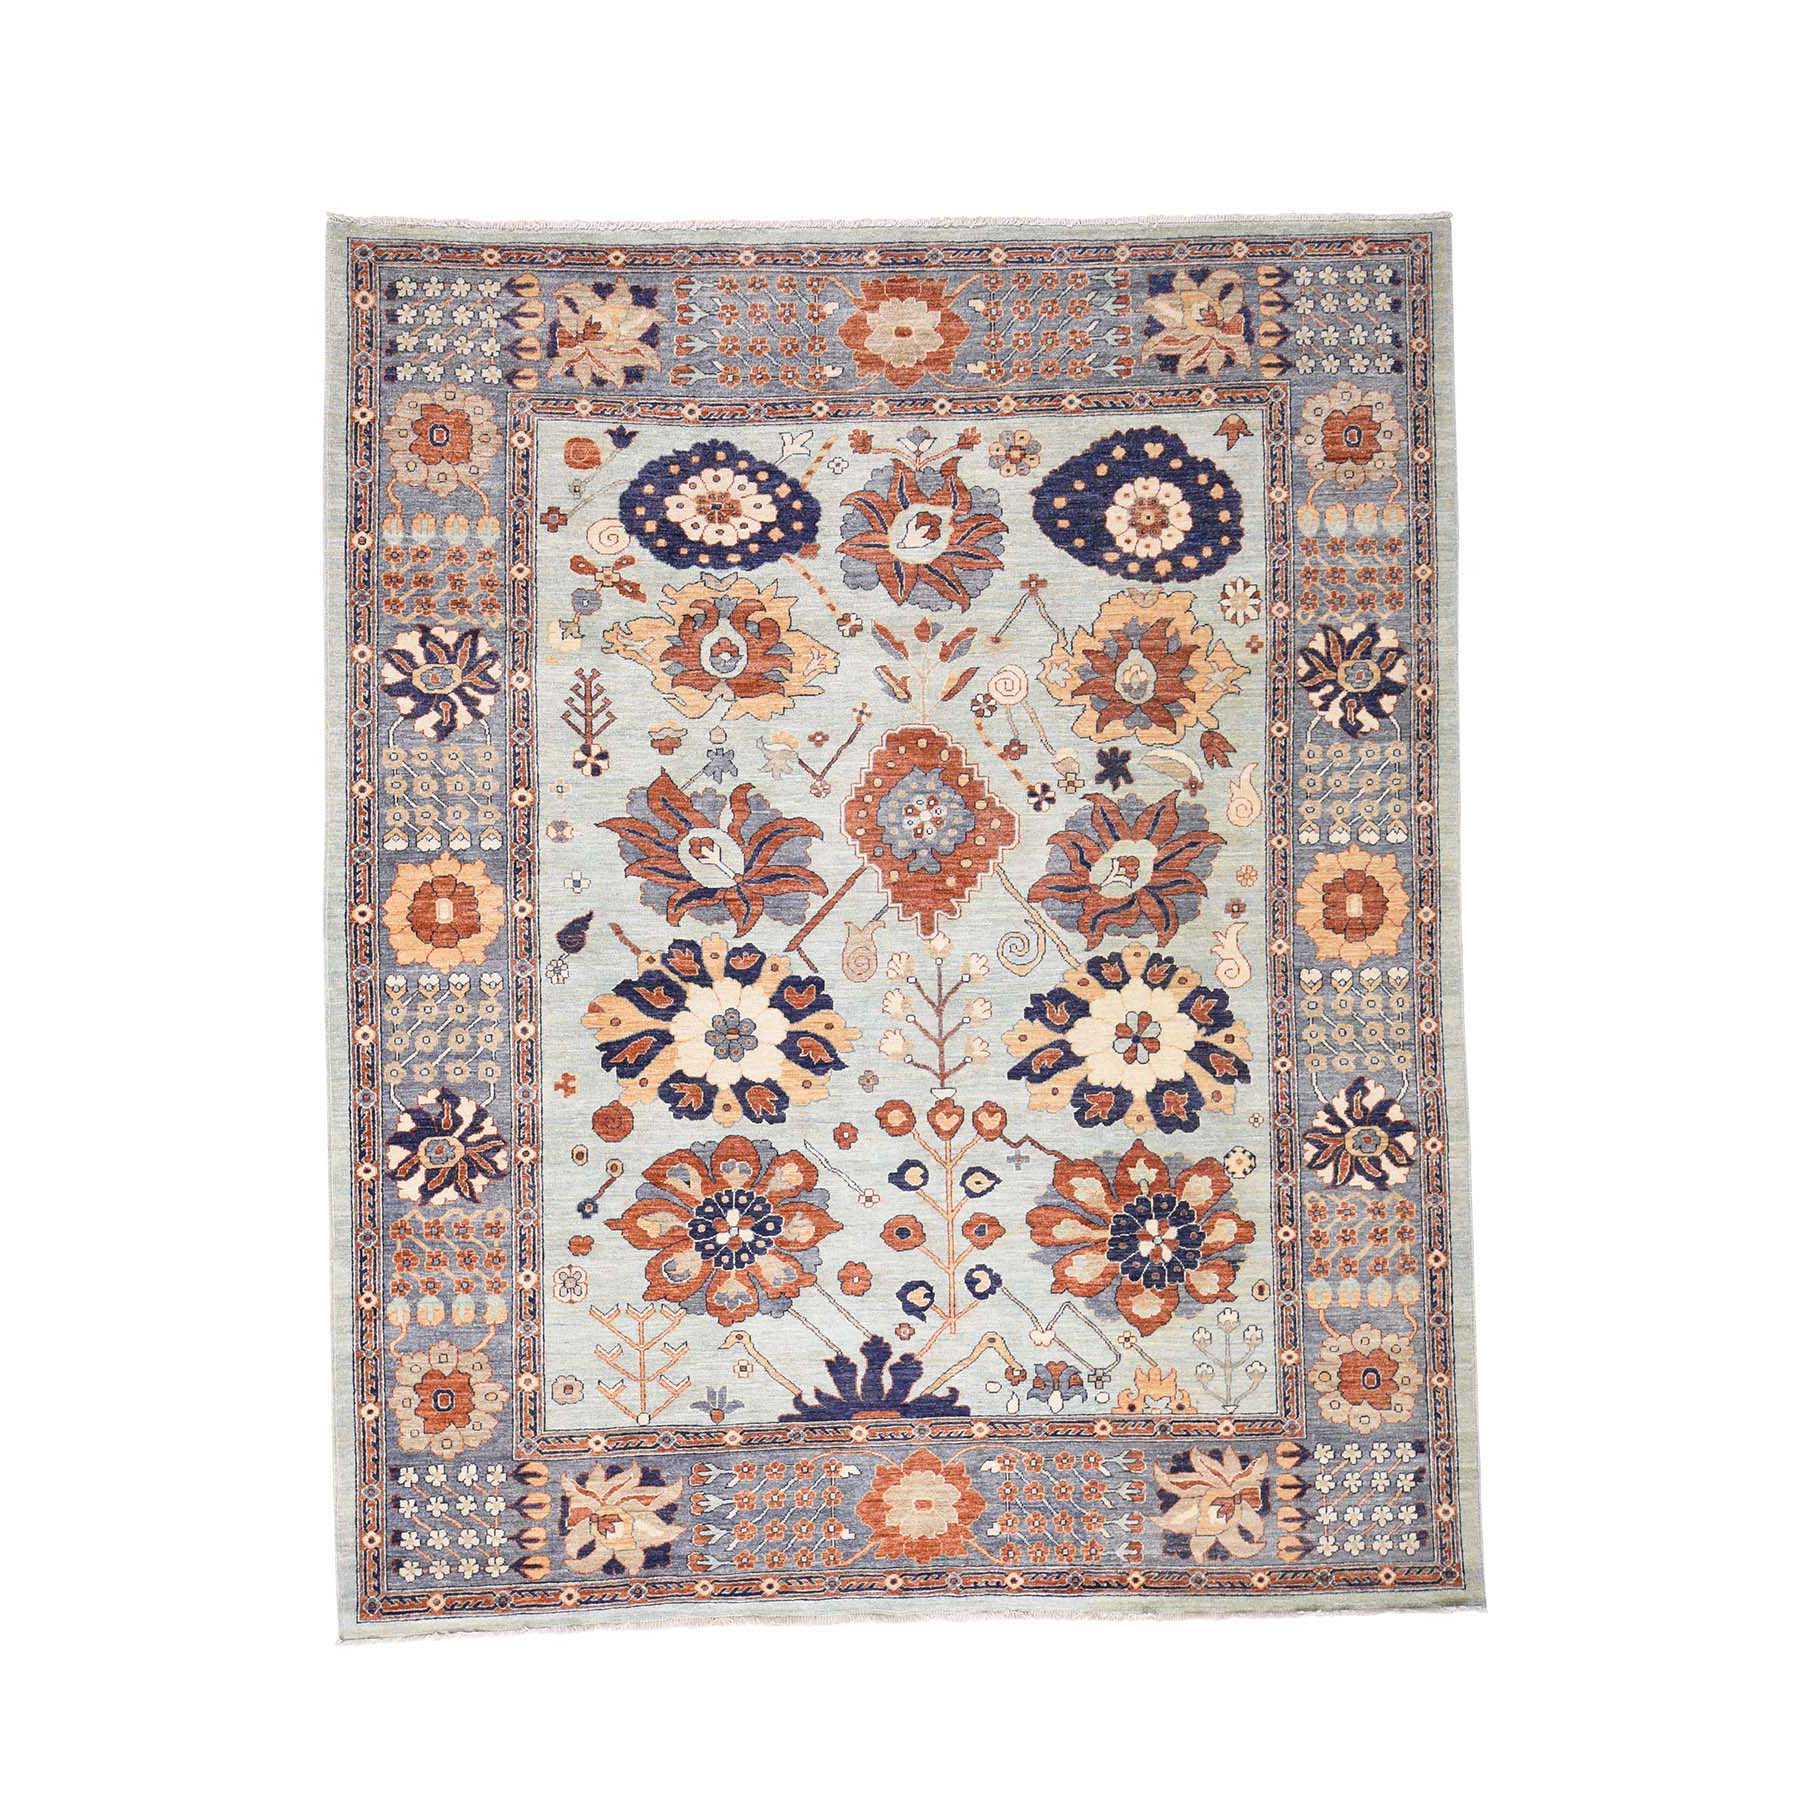 8'2''X10' Peshawar With Antiqued Sultanabad Design Hand-Knotted Oriental Rug moac8da7